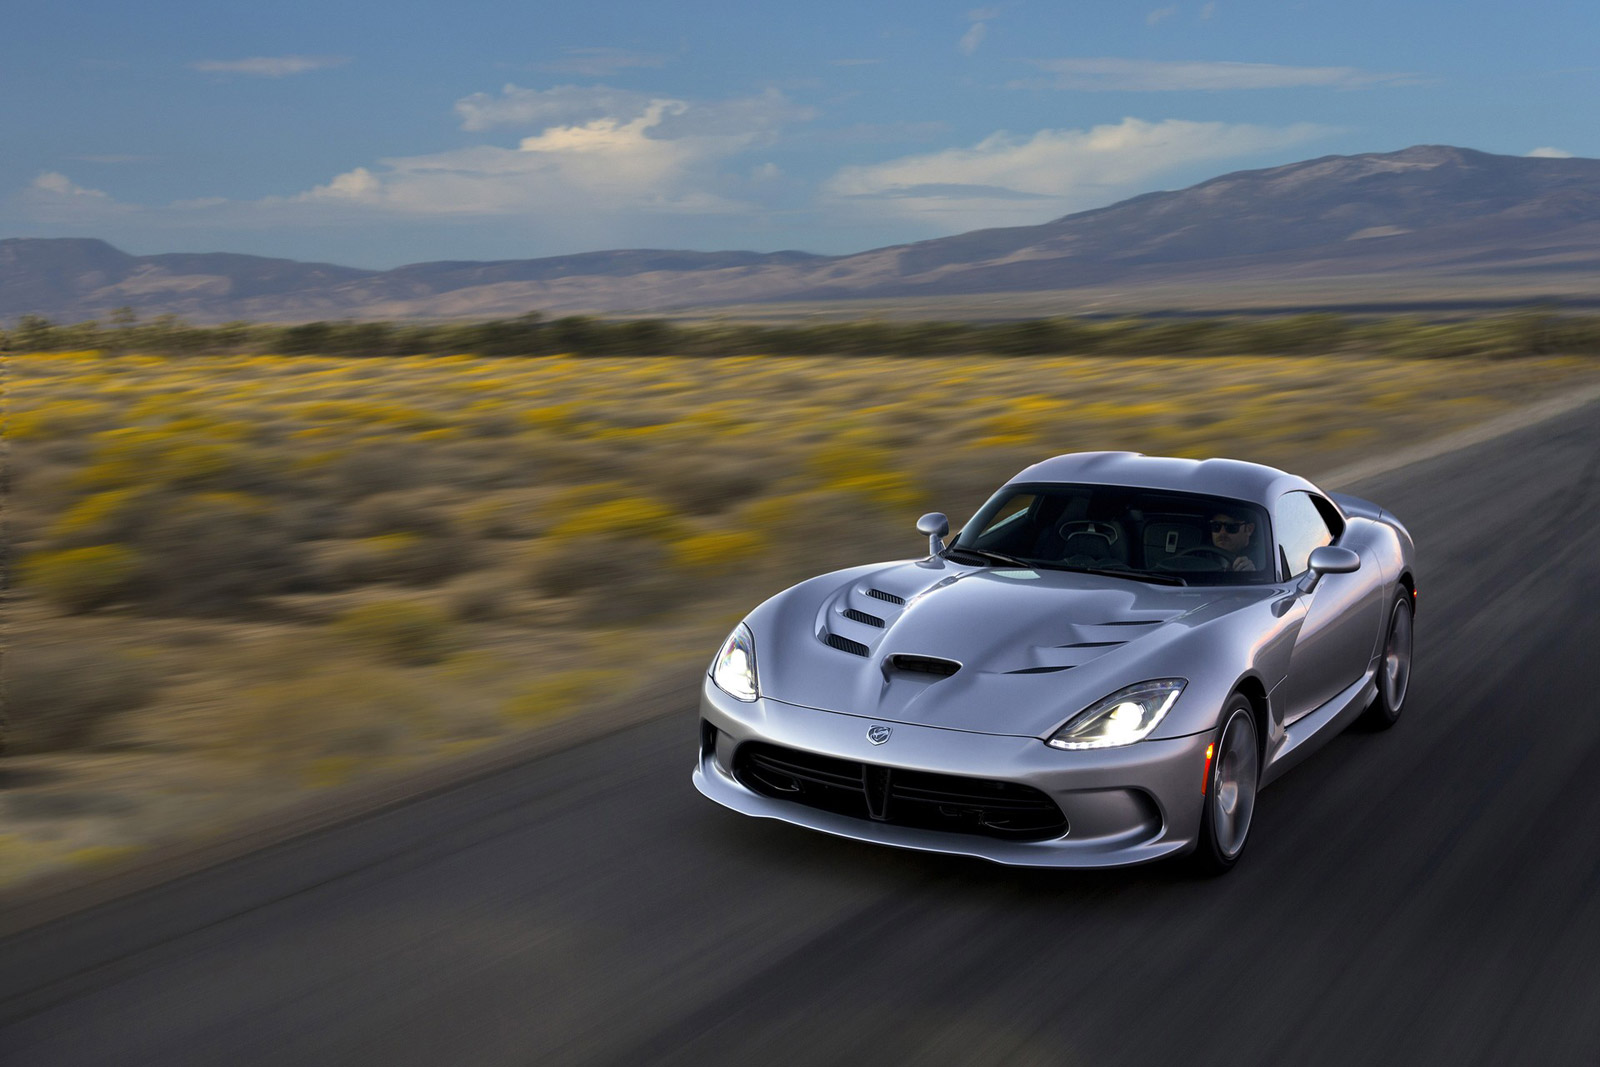 2015 dodge viper srt safety review and crash test ratings the car connection - Dodge Viper 2015